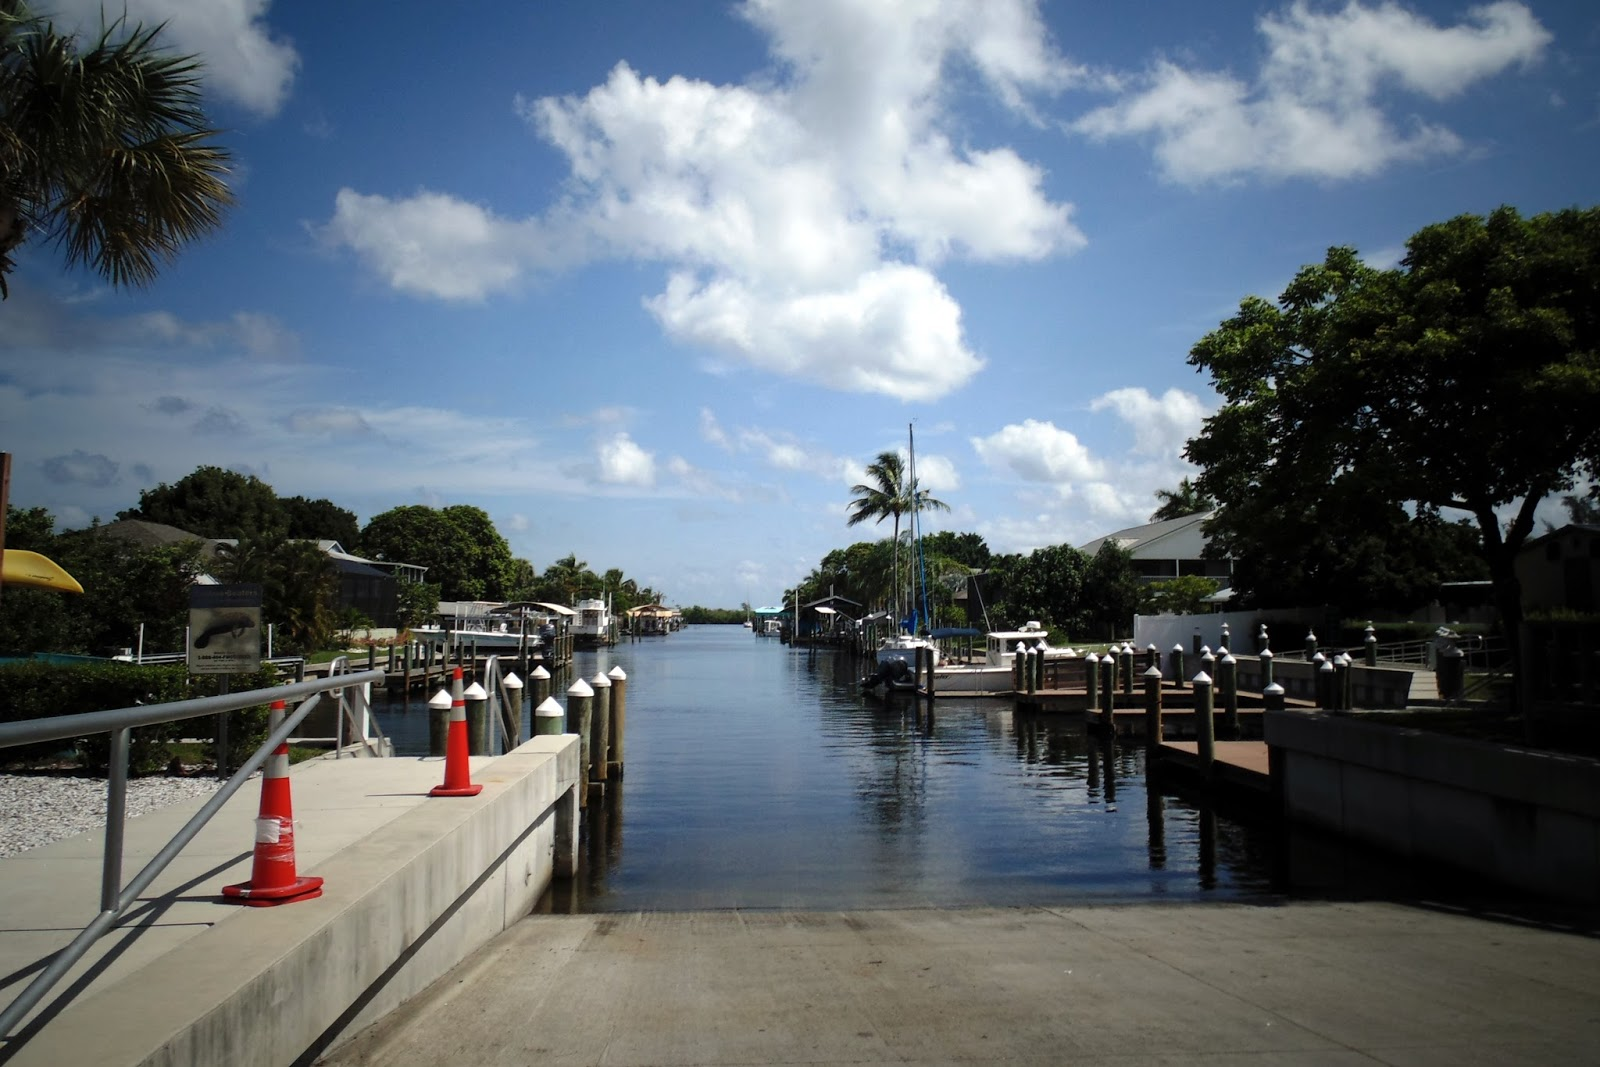 Pine Island Florida Boat Ramps And Launches On The East